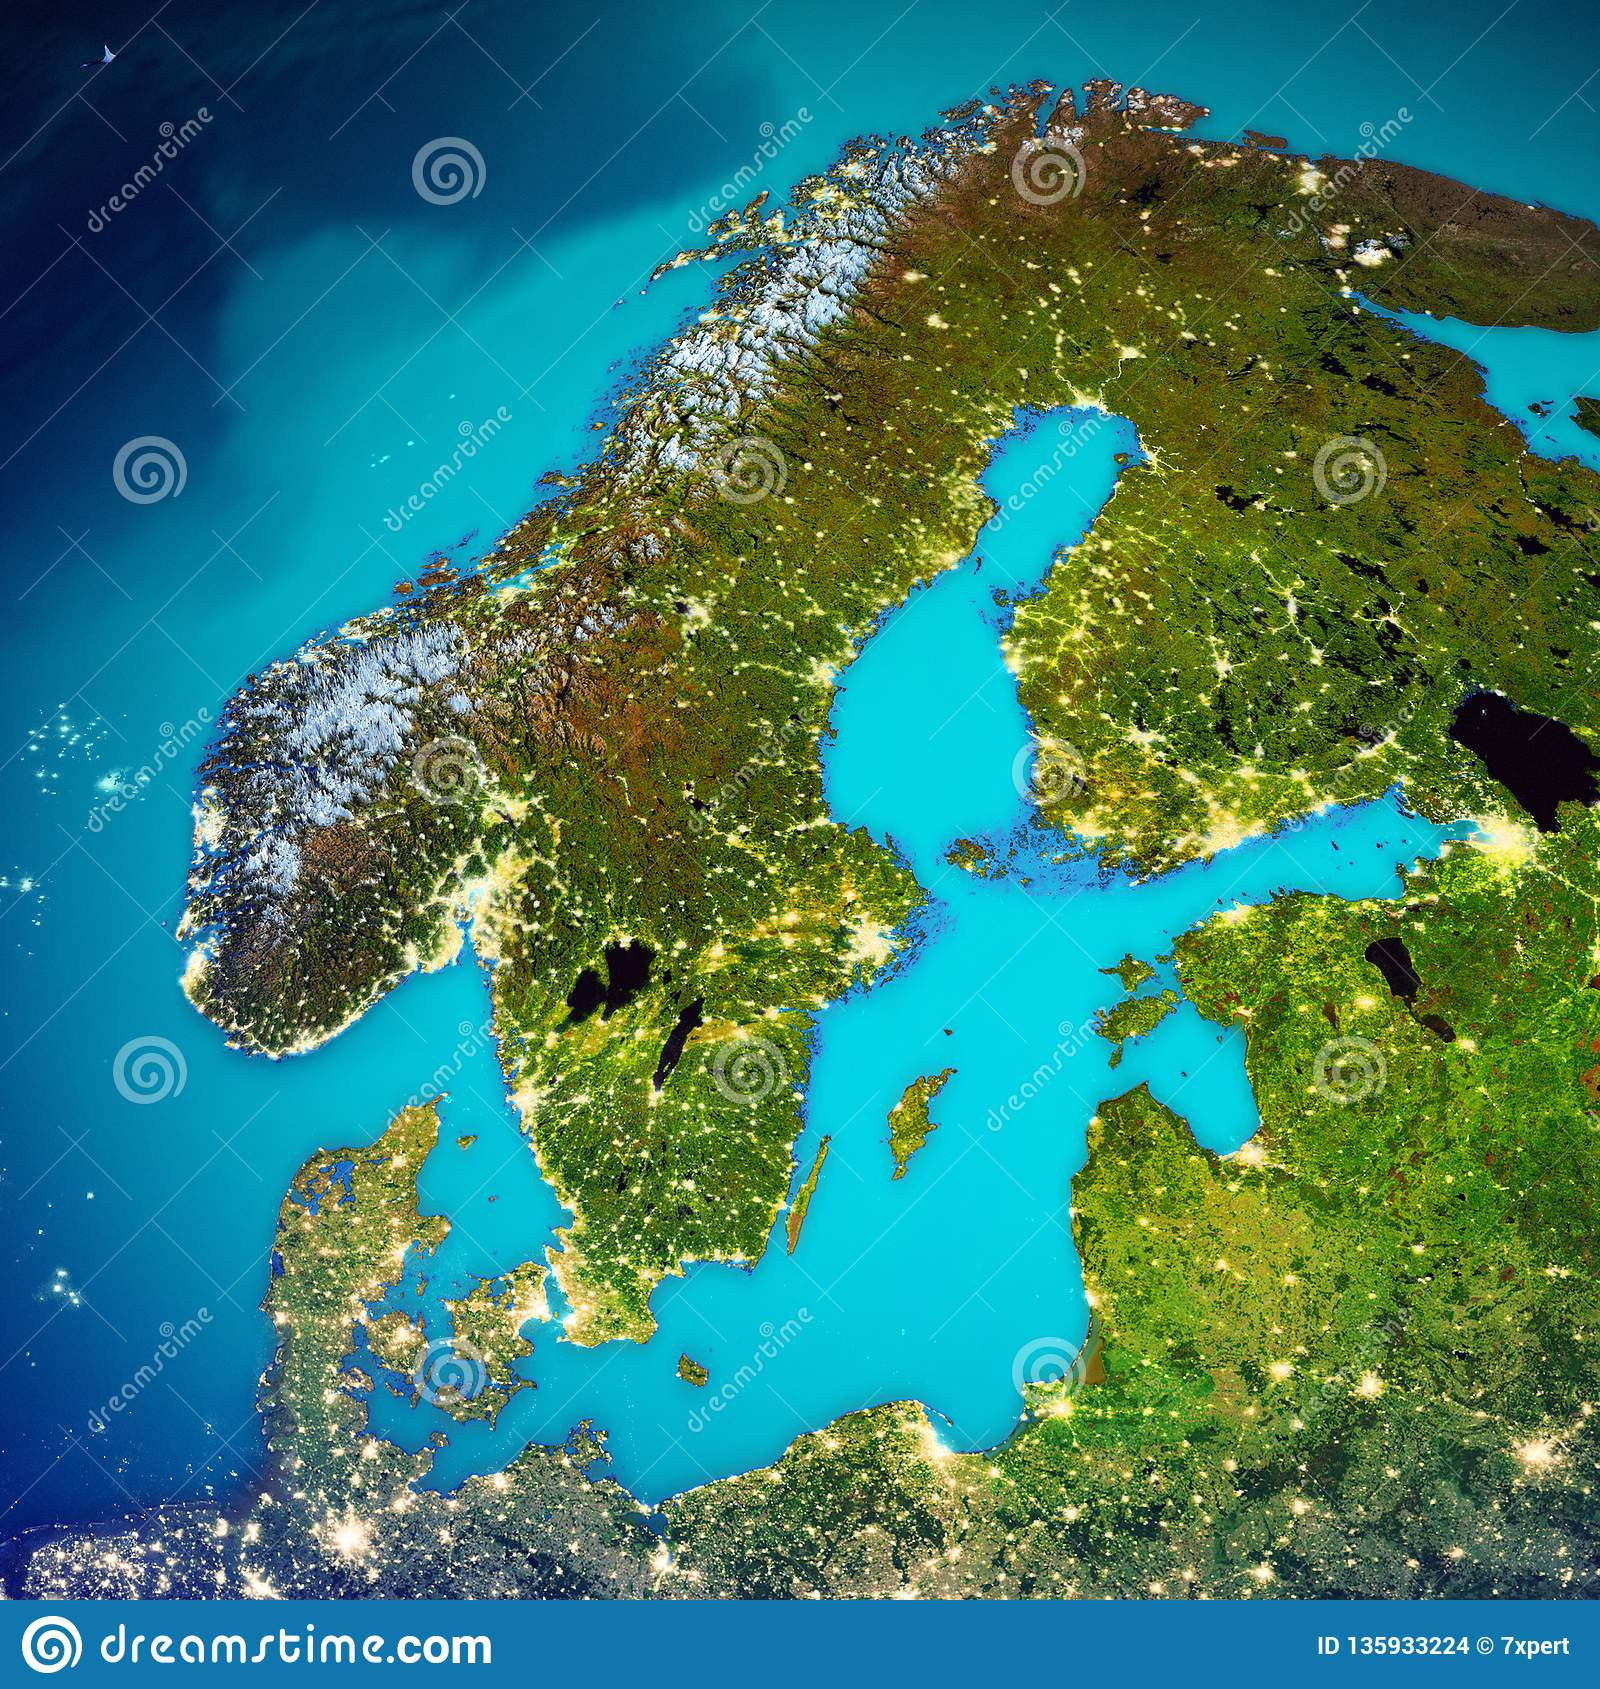 751 Map Scandinavia Photos Free Royalty Free Stock Photos From Dreamstime